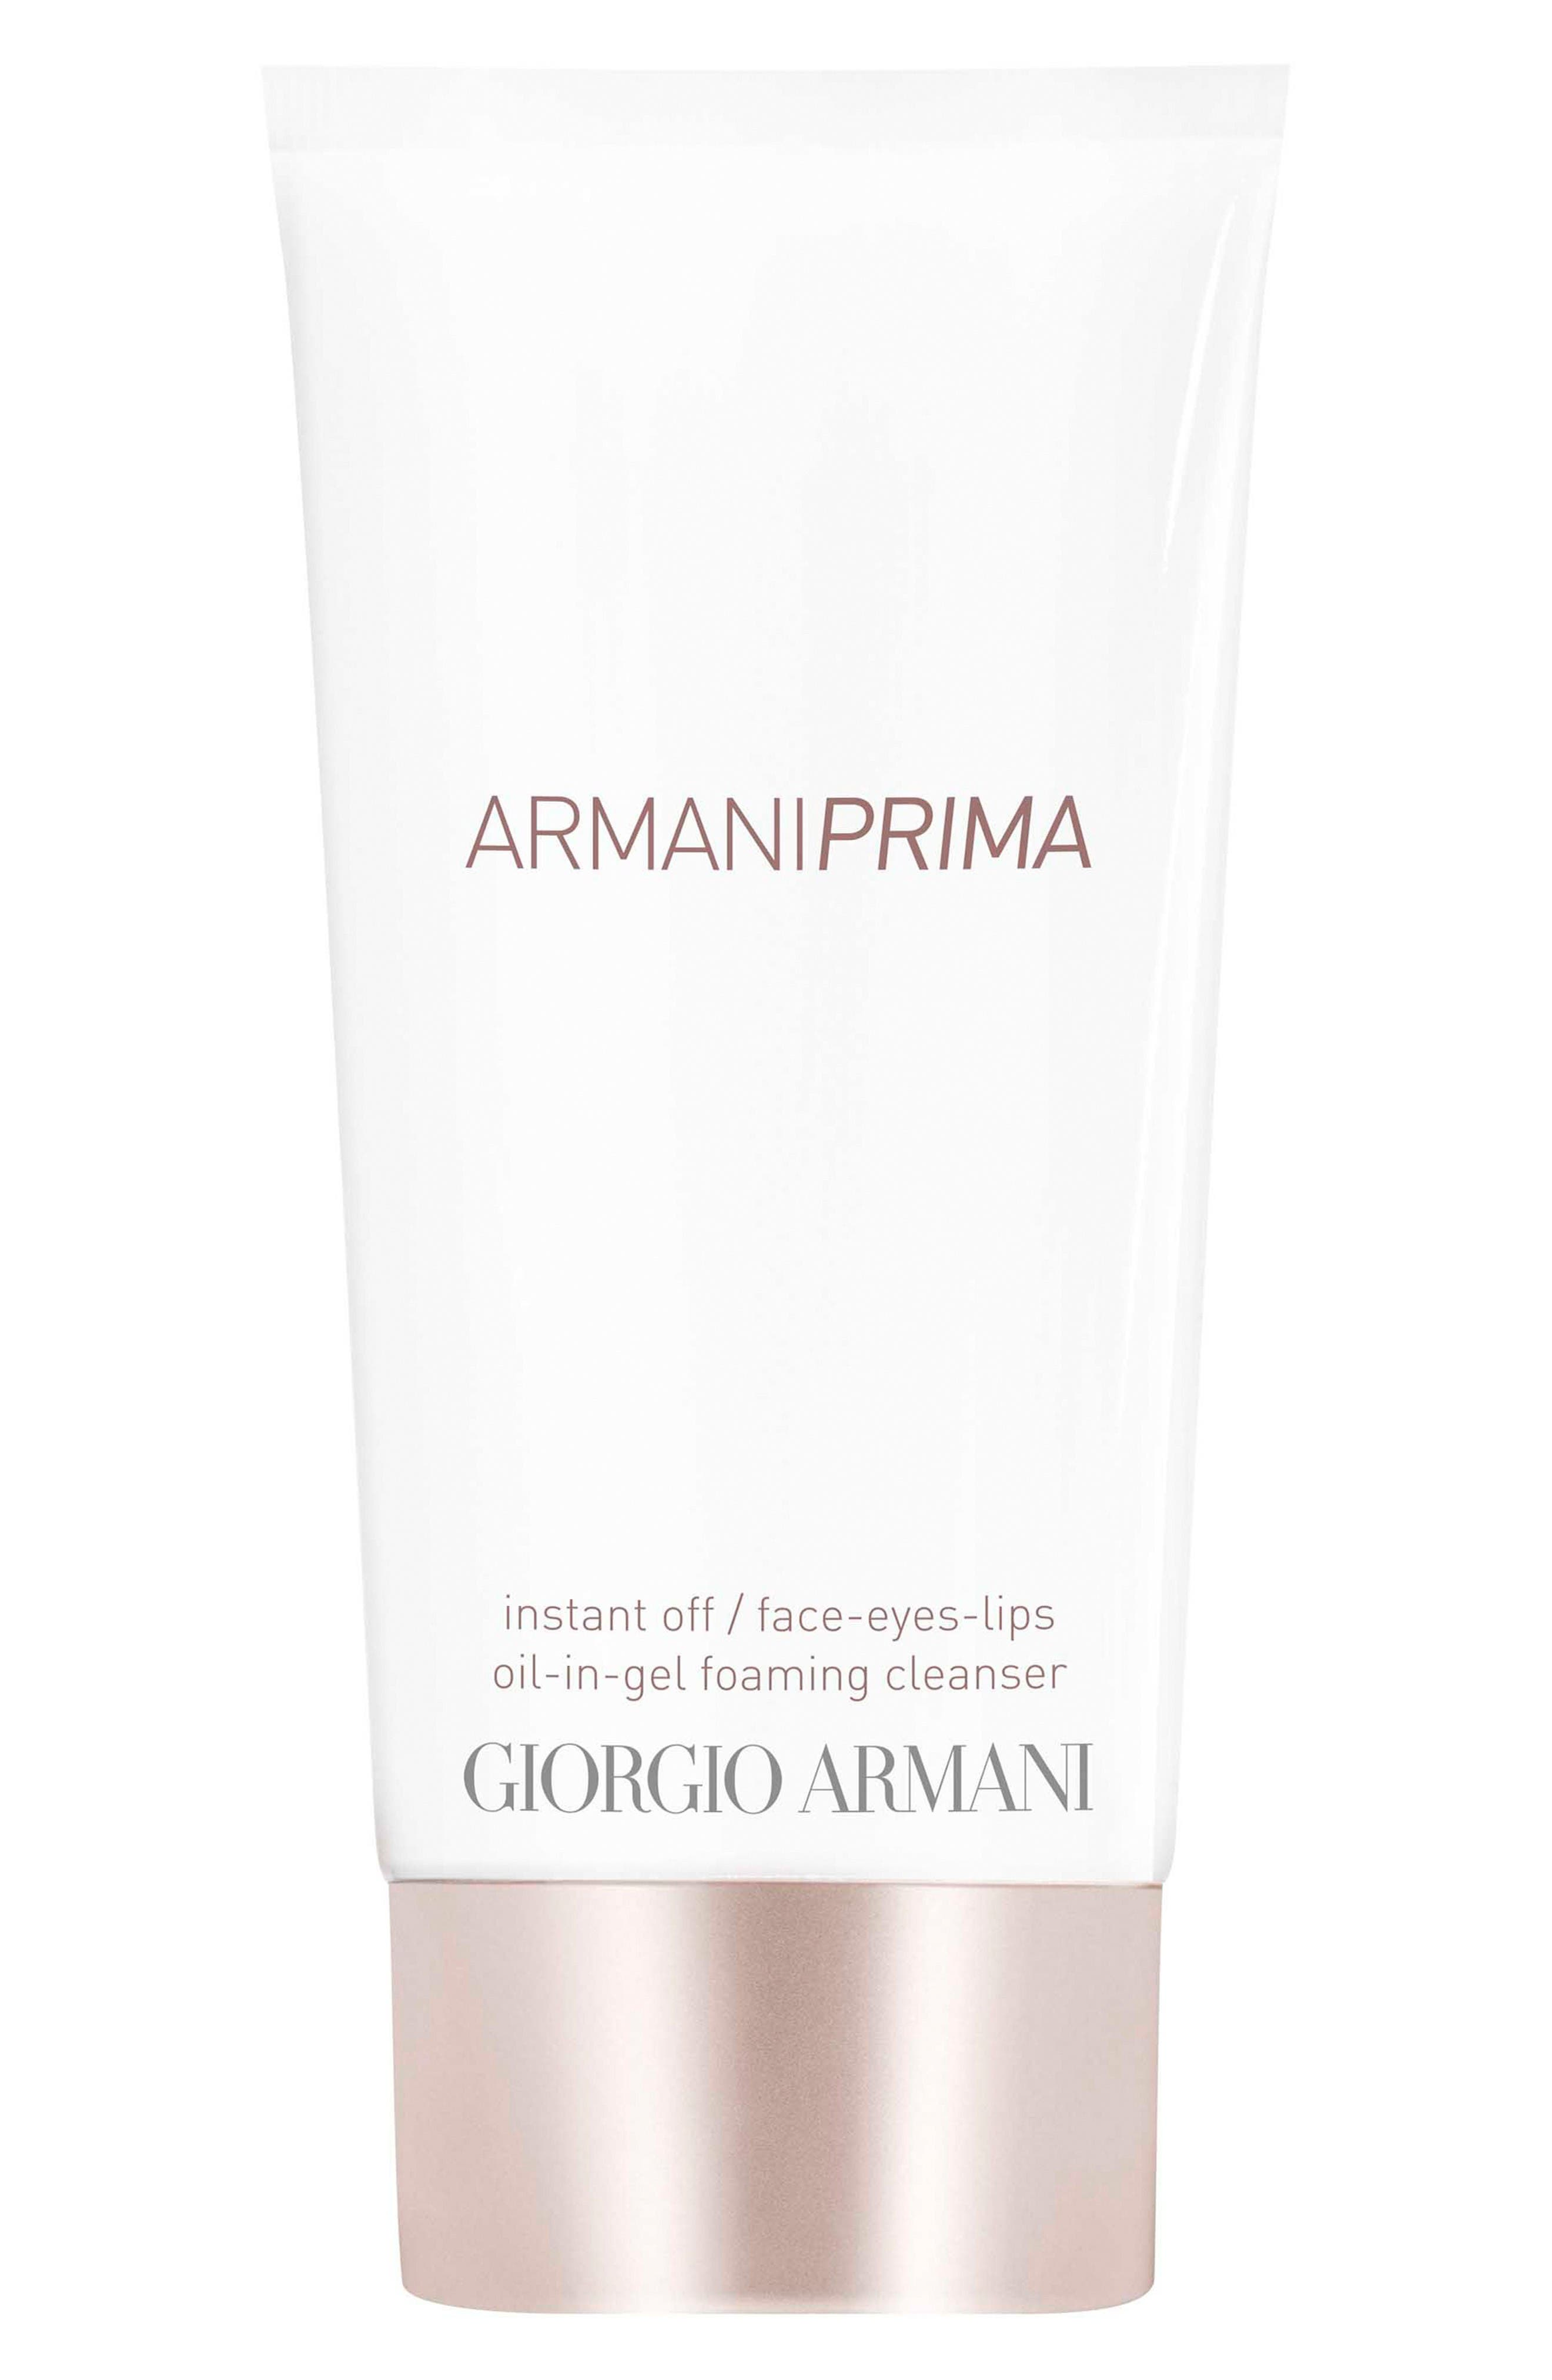 Main Image - Giorgio Armani Prima Instant Off Face, Eyes & Lips Oil-in-Gel Foaming Cleanser